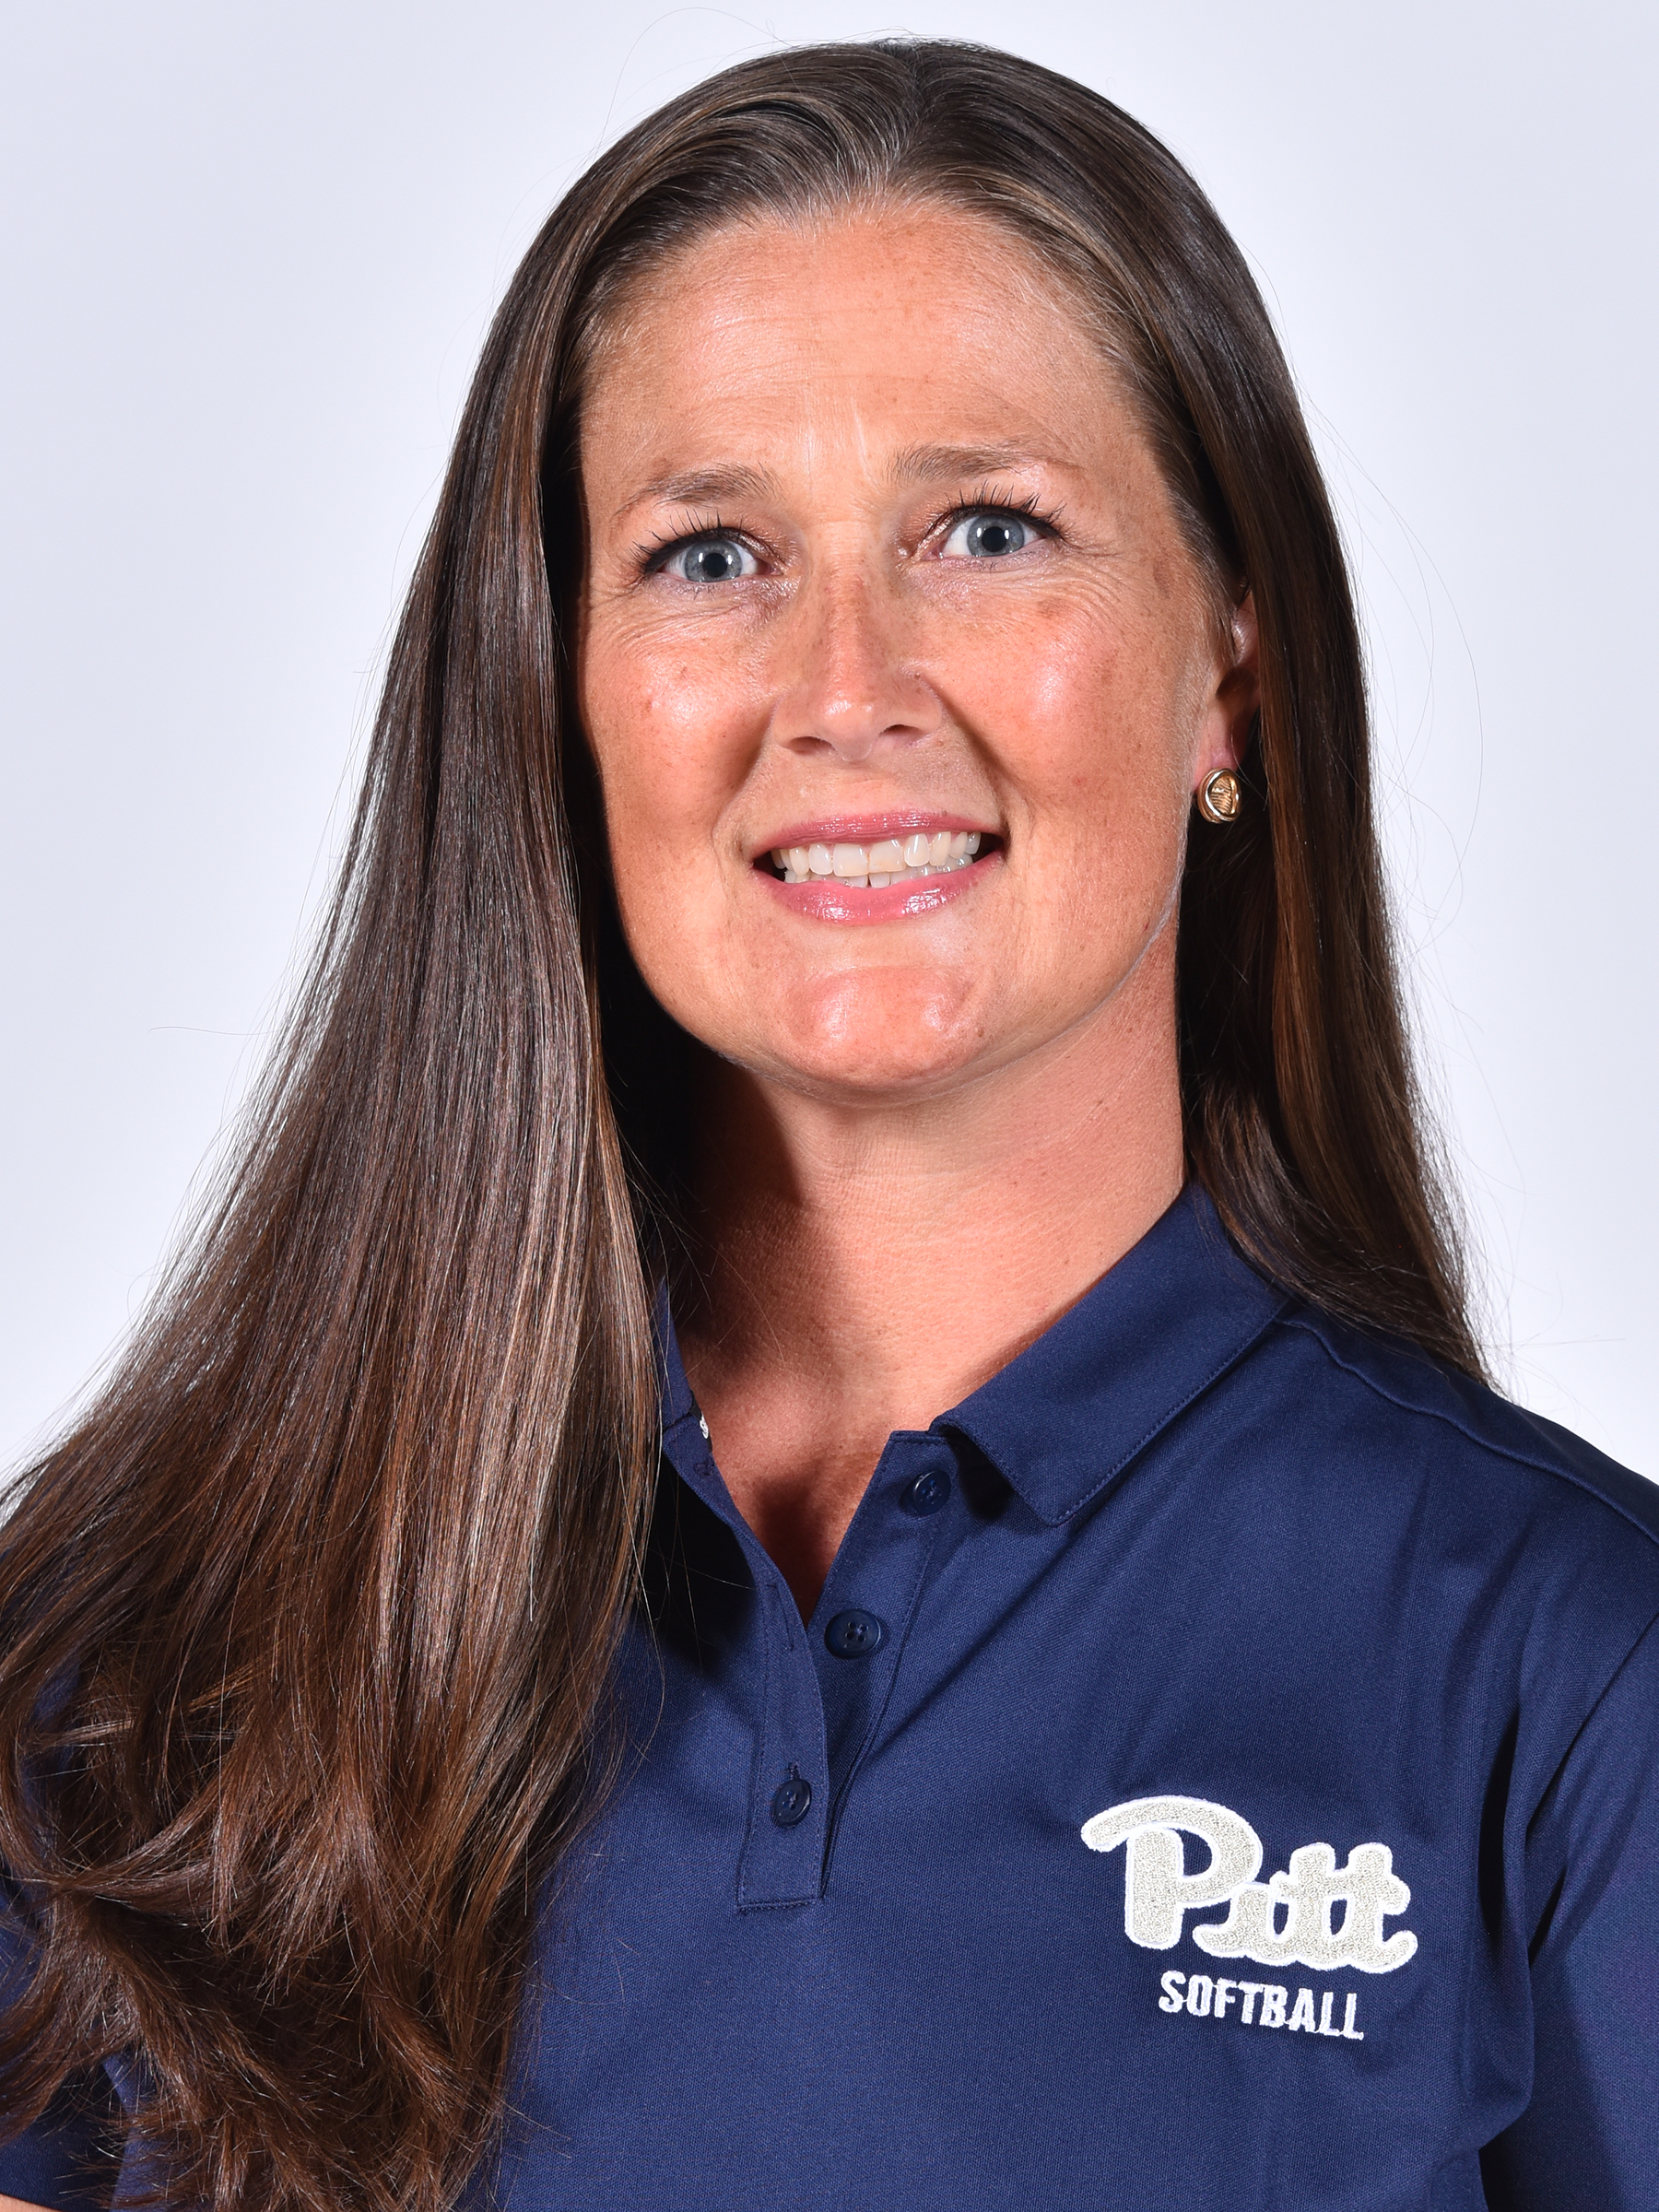 Jodi Hermanek - Univ. of Pitt